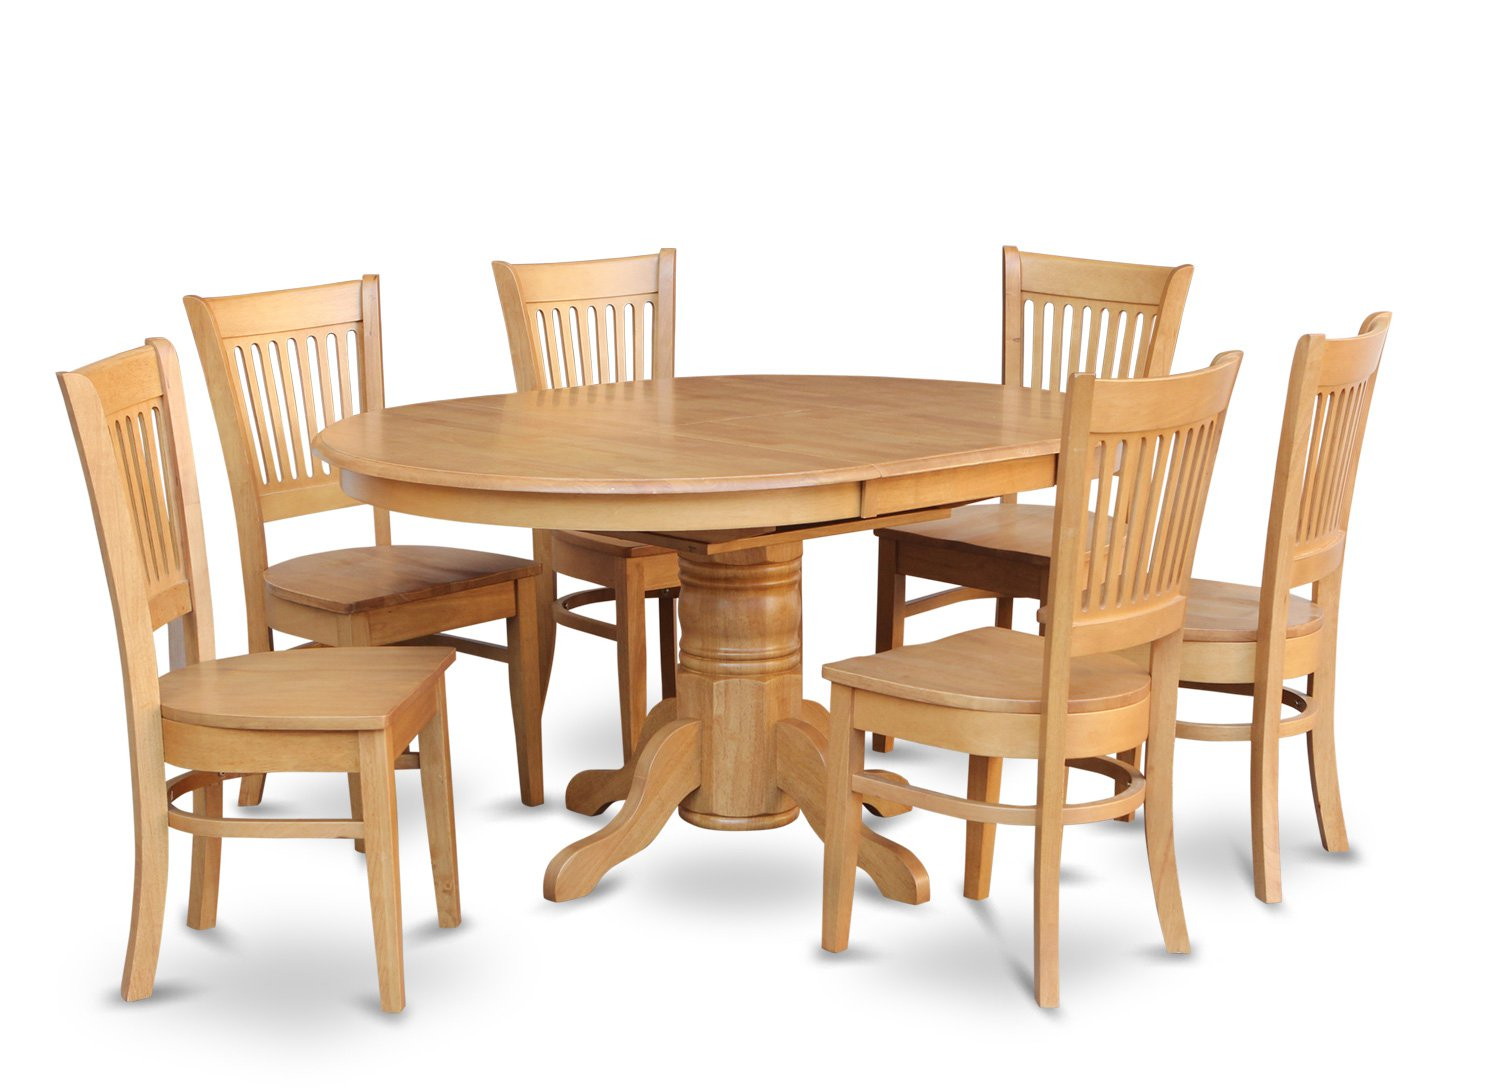 7 PC Dinette Kitchen Dining Set Oval Table with 6 Wood